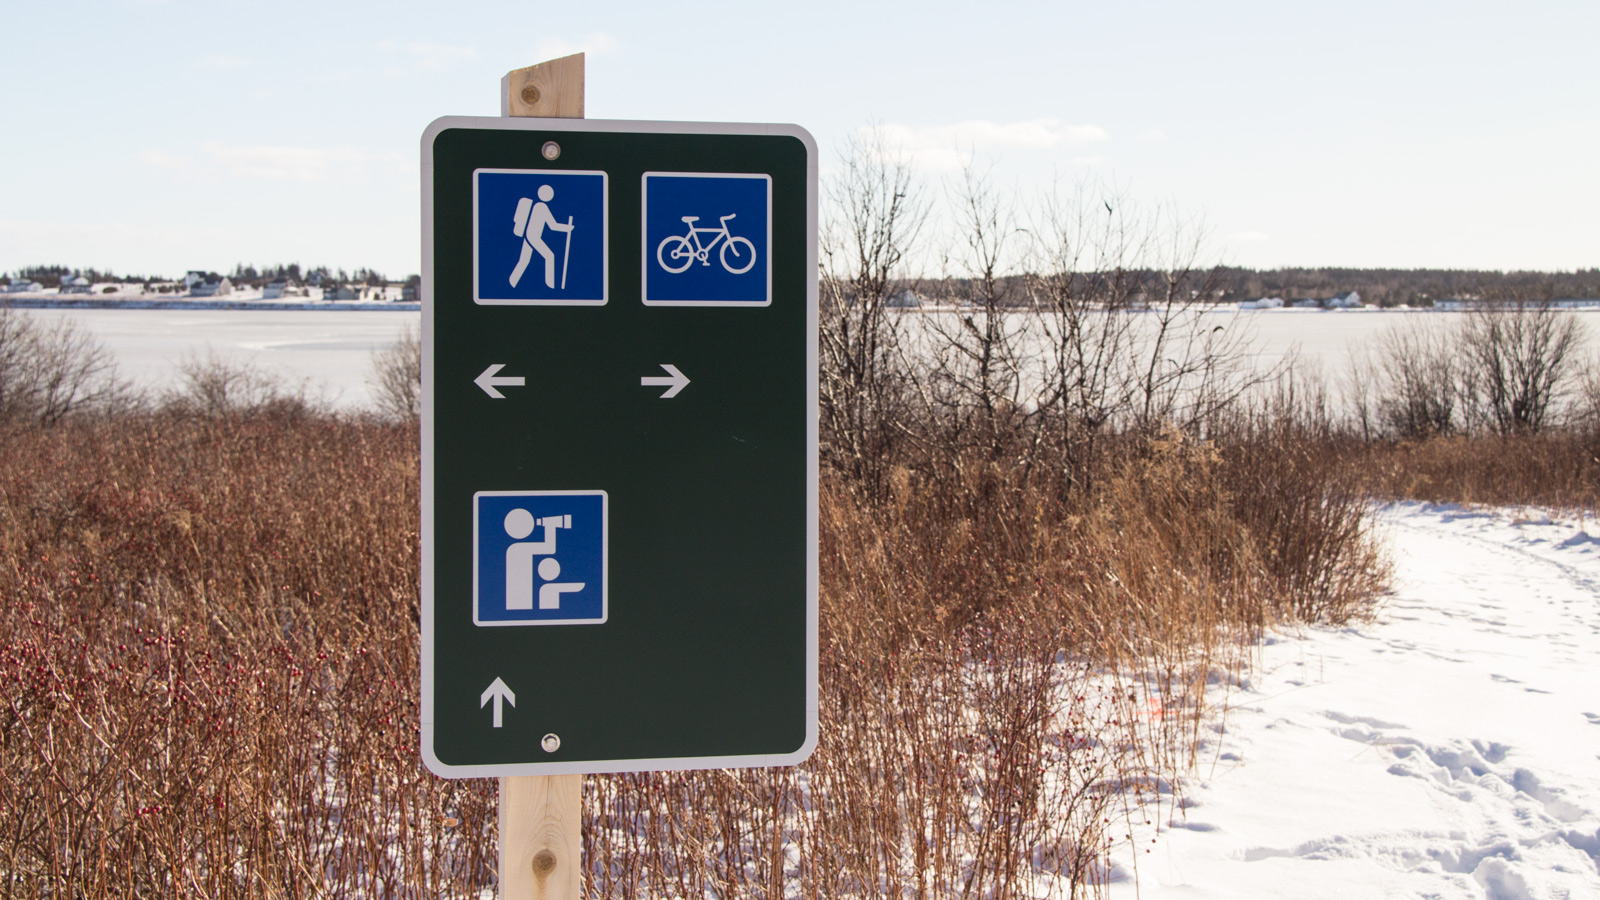 ON- AND OFF-SEASON Operational signage direct trail users to important amenities like lookoffs, and parking lots.